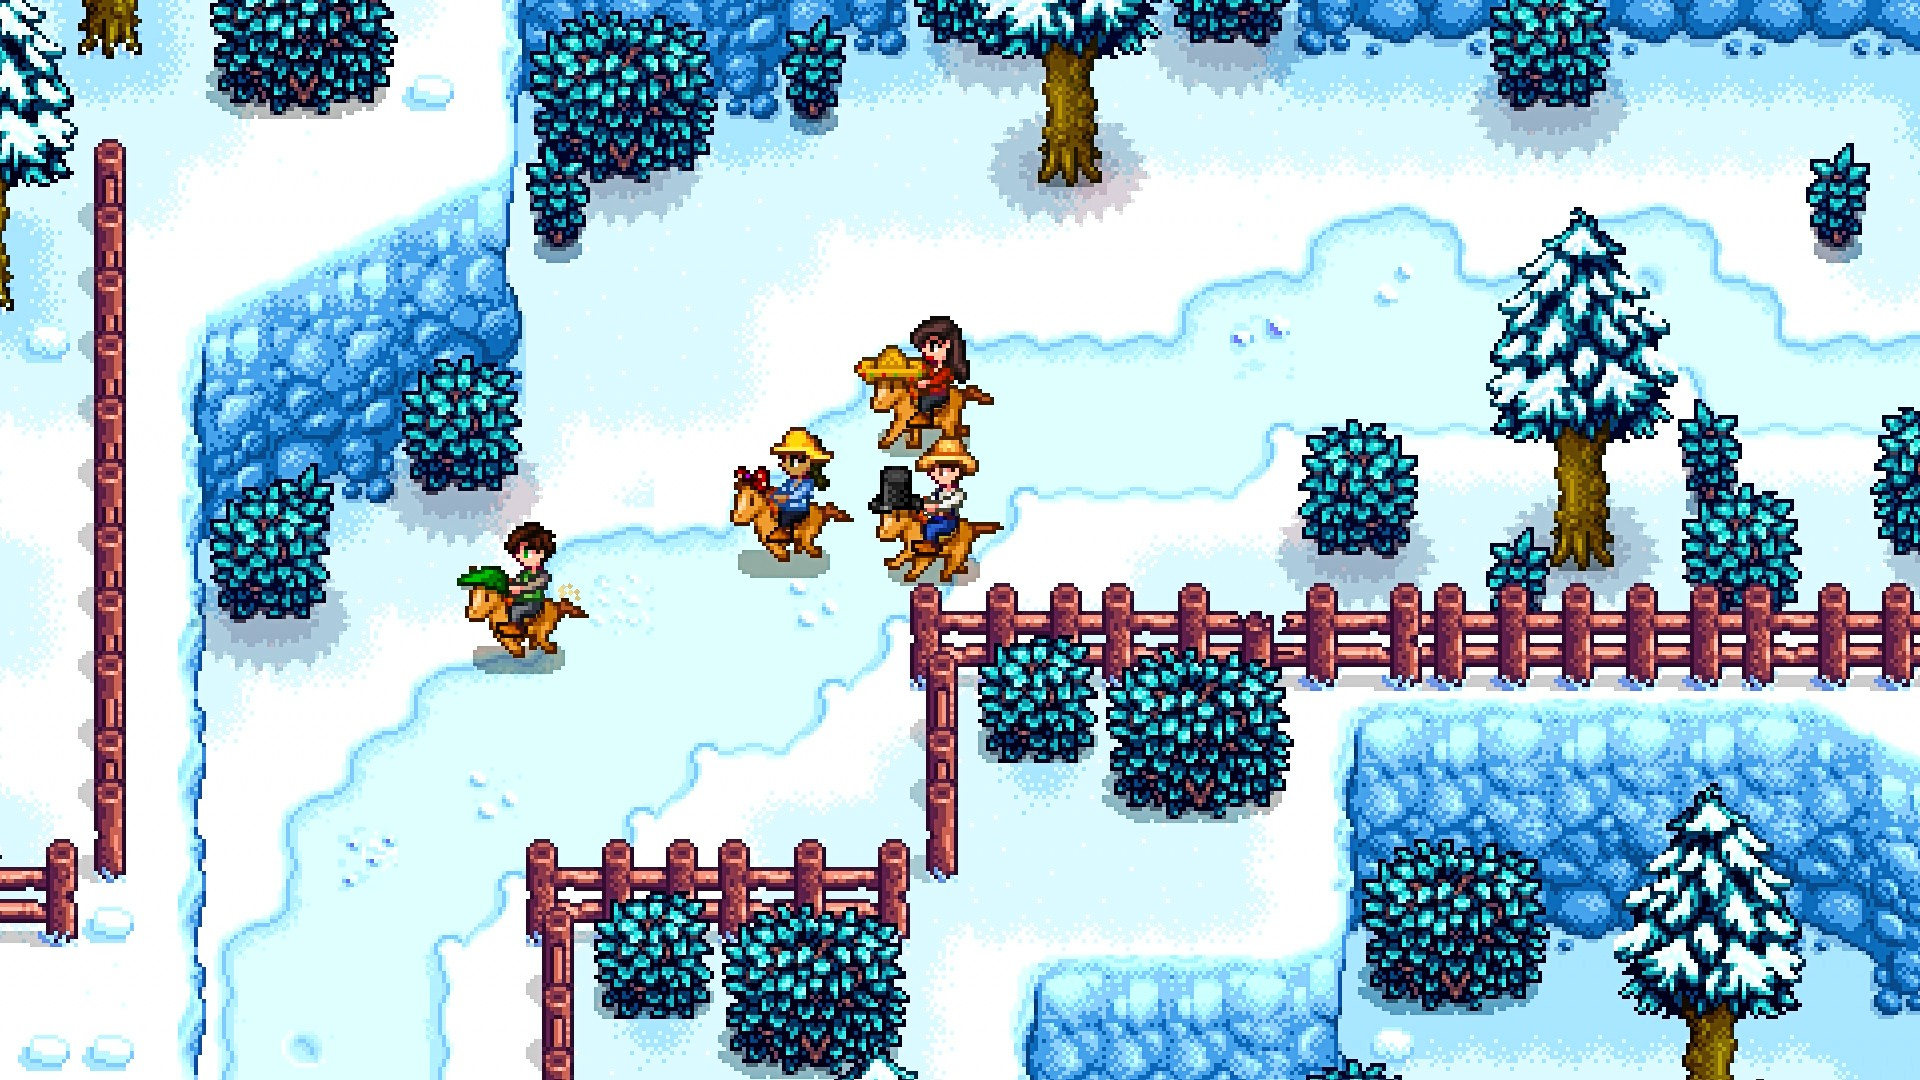 This Stardew Valley mod lets you have platonic relationships